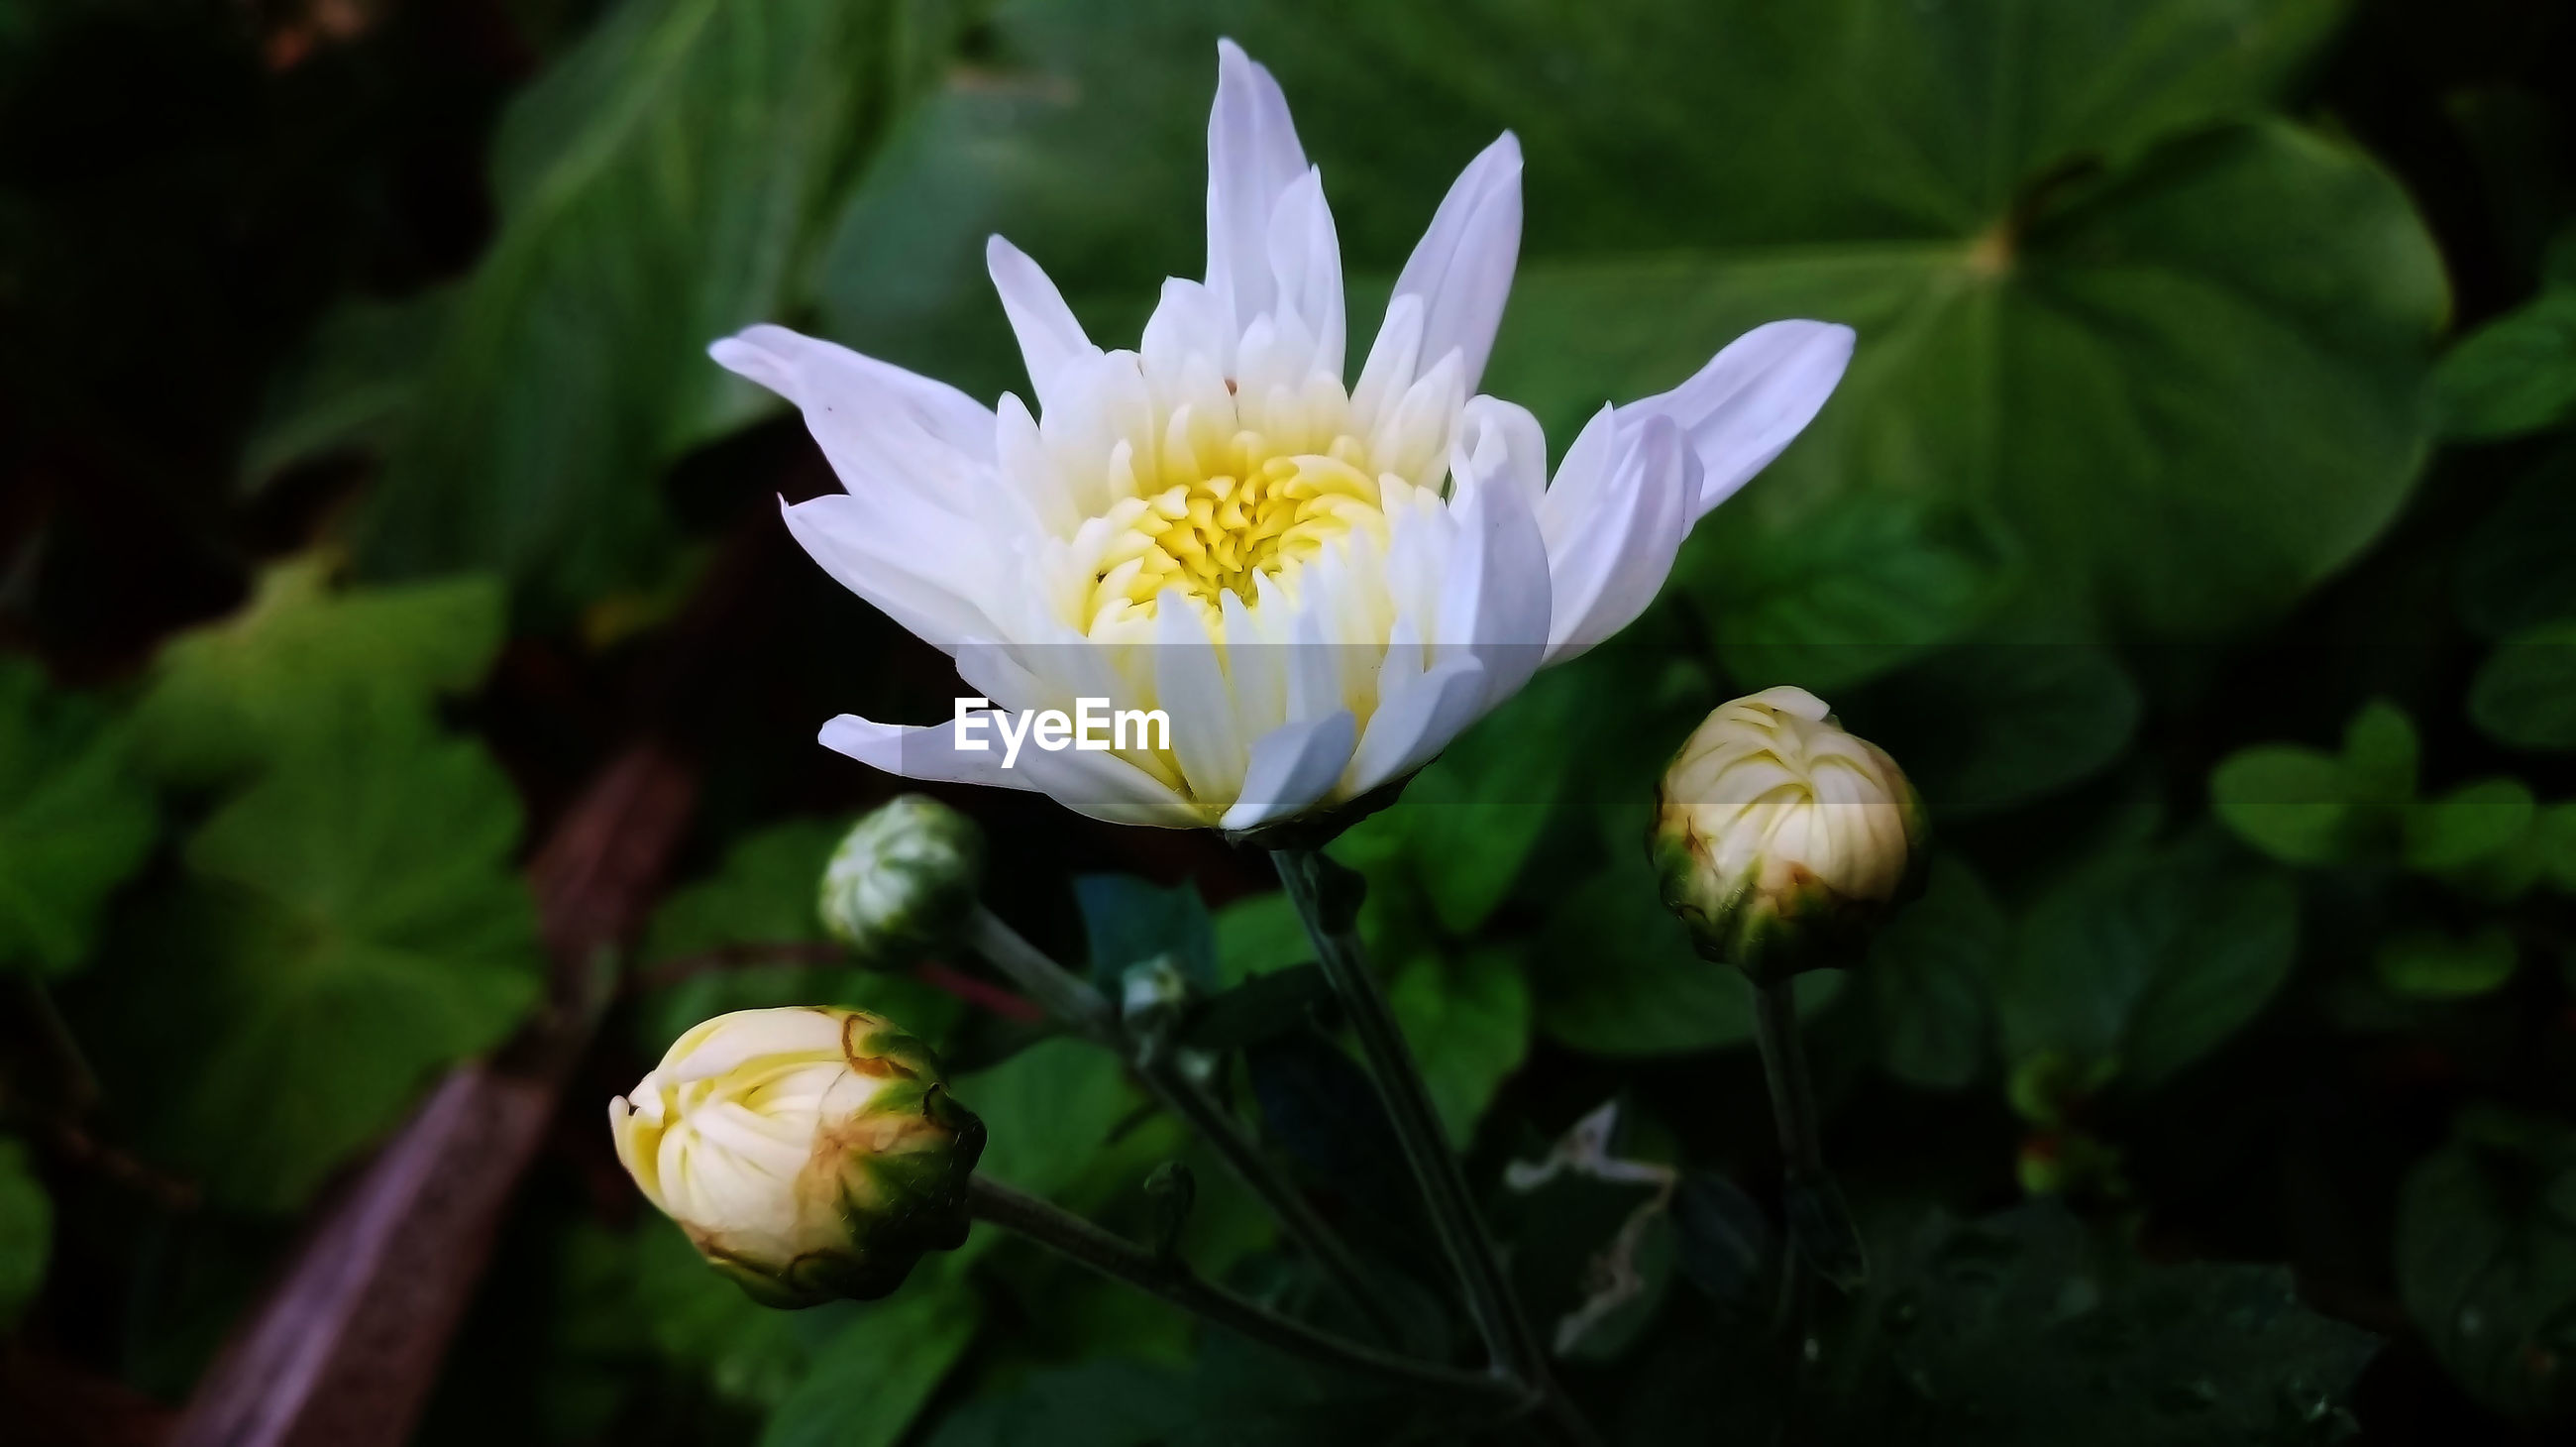 flower, flowering plant, vulnerability, fragility, plant, beauty in nature, freshness, petal, growth, close-up, flower head, inflorescence, white color, nature, focus on foreground, no people, leaf, day, botany, yellow, outdoors, pollen